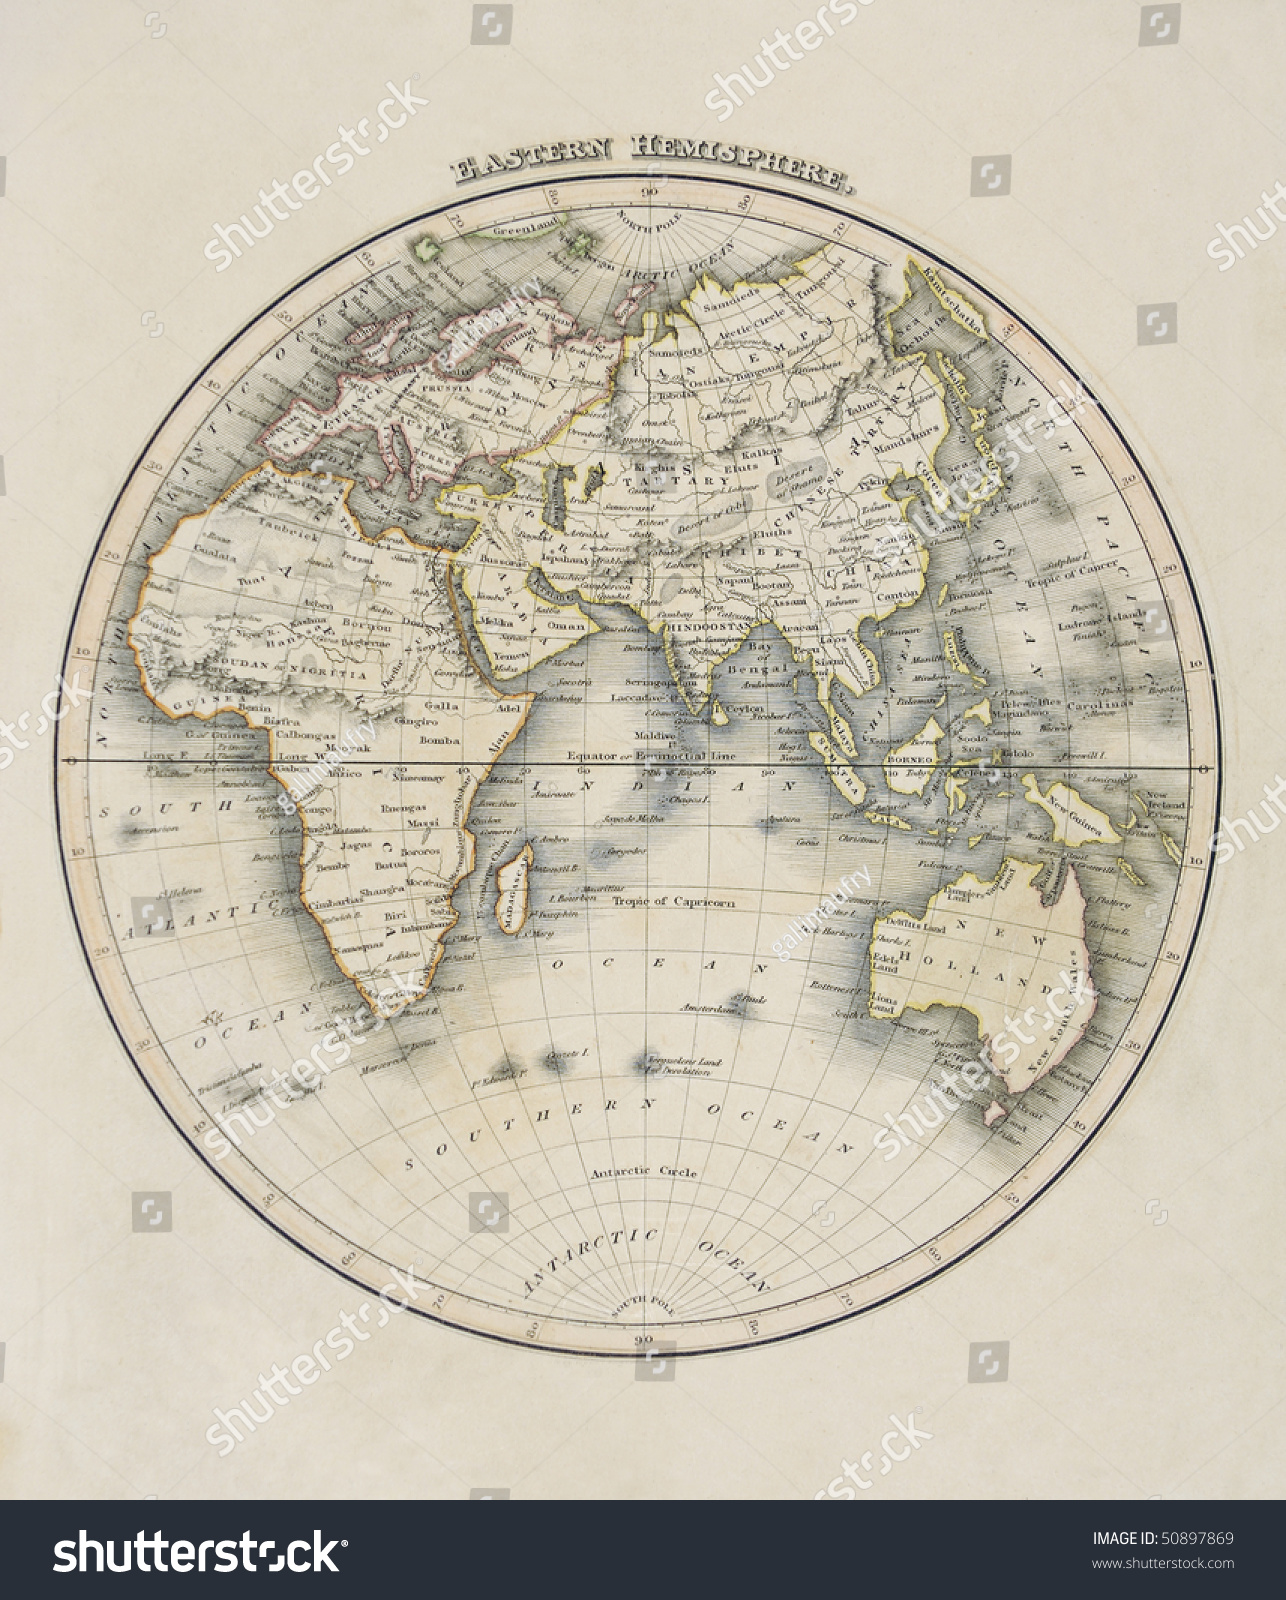 Map Of The World Eastern Hemisphere Showing Africa Asia